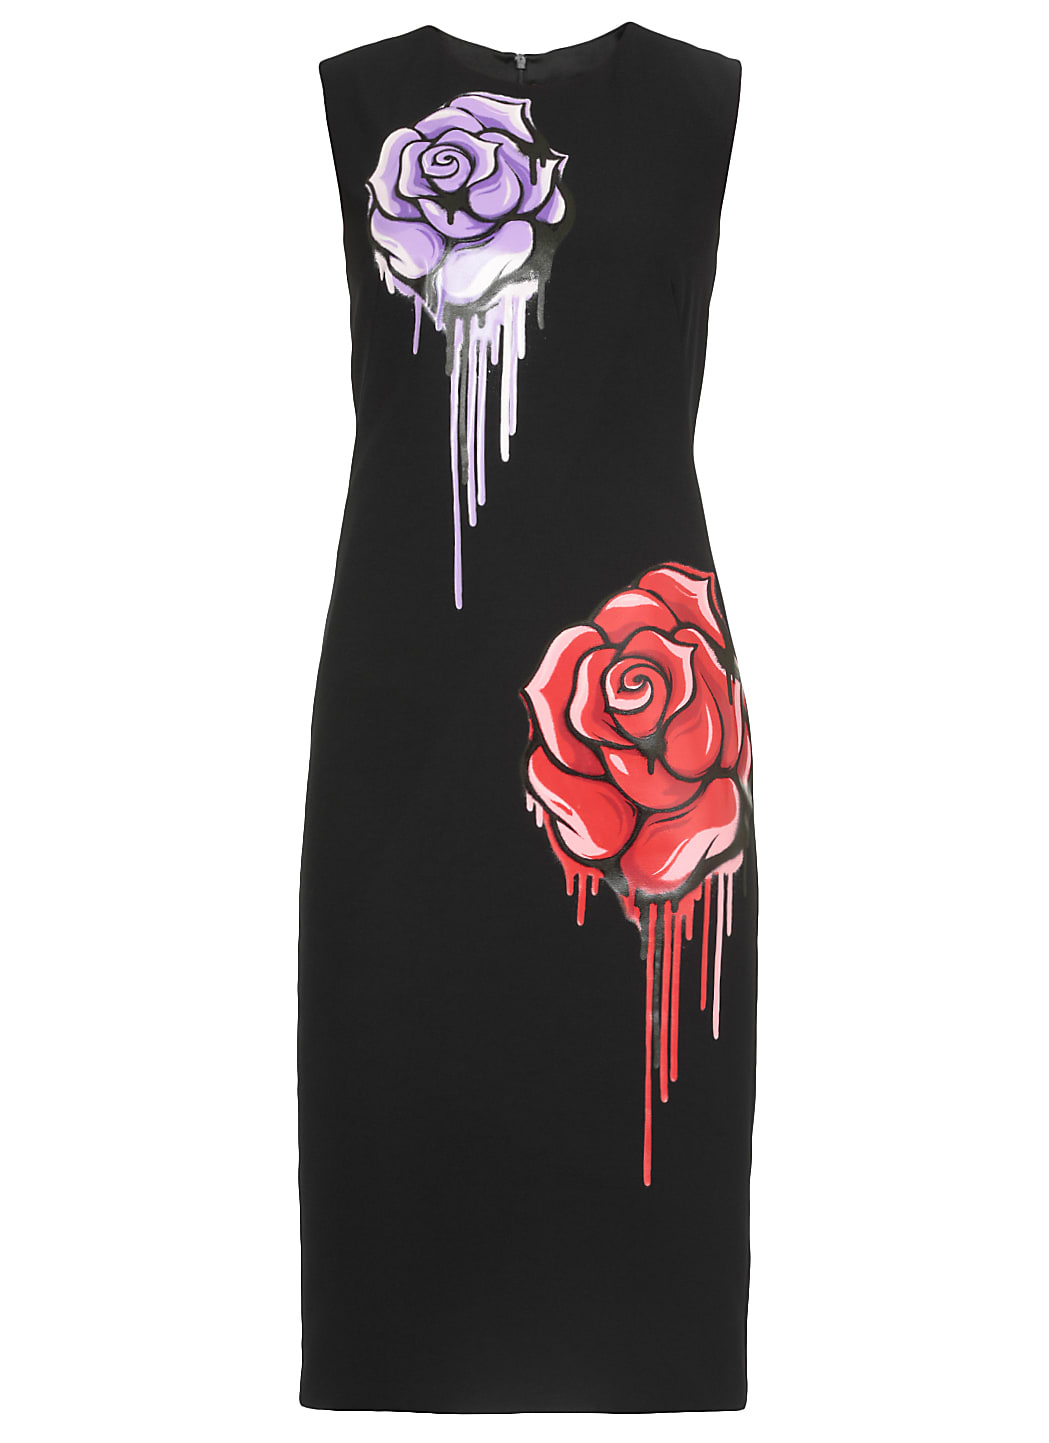 Boutique Moschino Printed Dress In Black